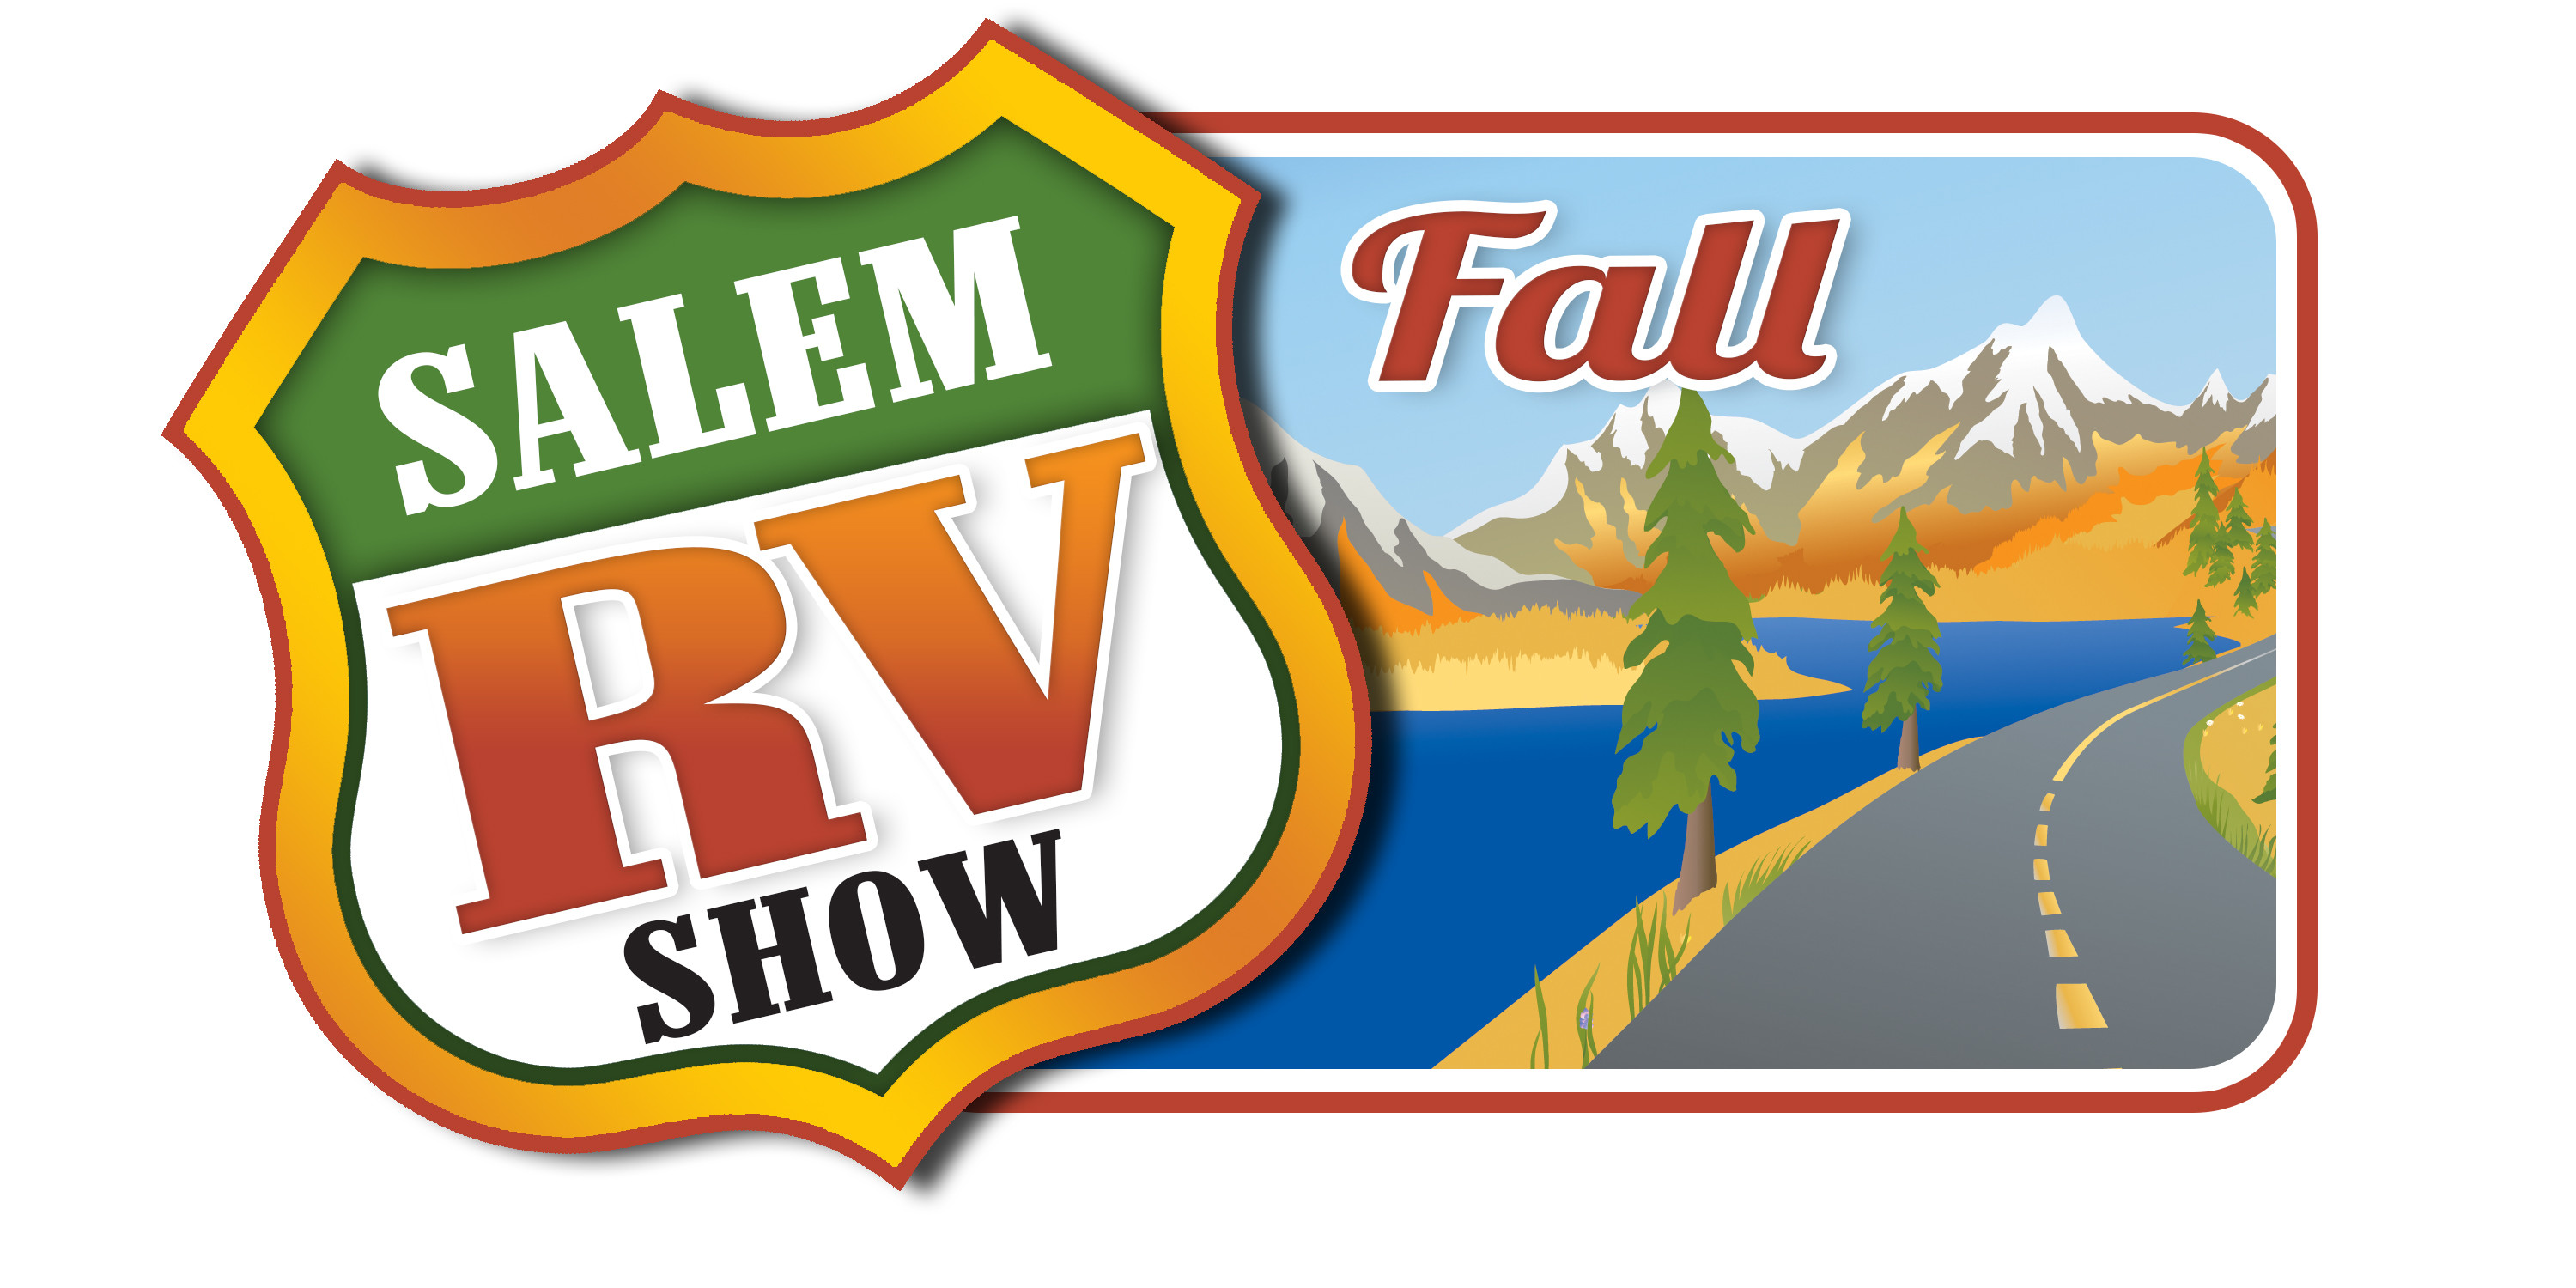 https://steenmanassociates.com/wp-content/uploads/2019/10/Salem-Fall-RV-Show.jpg.jpg